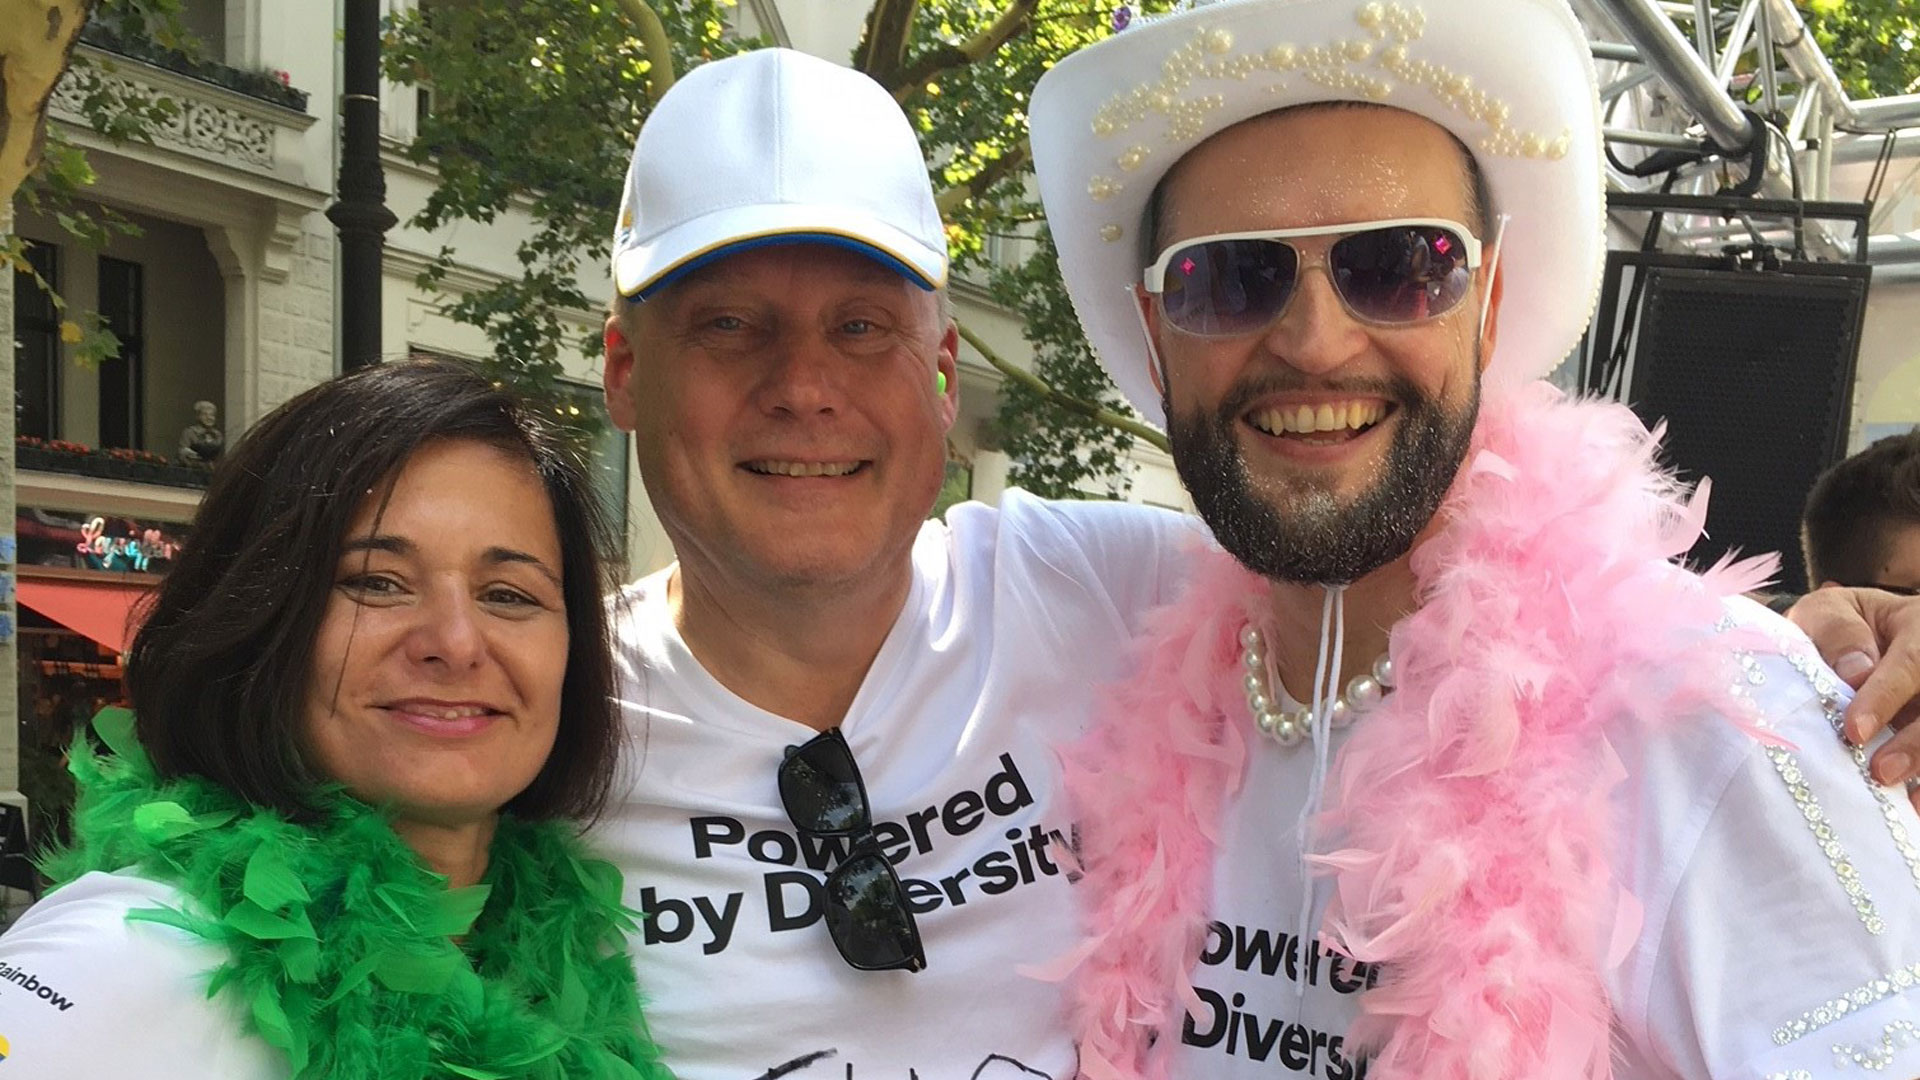 From left to right: Mandy Rohwedder member of the Vattenfall Rainbow Network board, Diversity & Inclusion Officer Tuomo Hatakka and Johannes Nohl chairman of the Vattenfall Rainbow Network